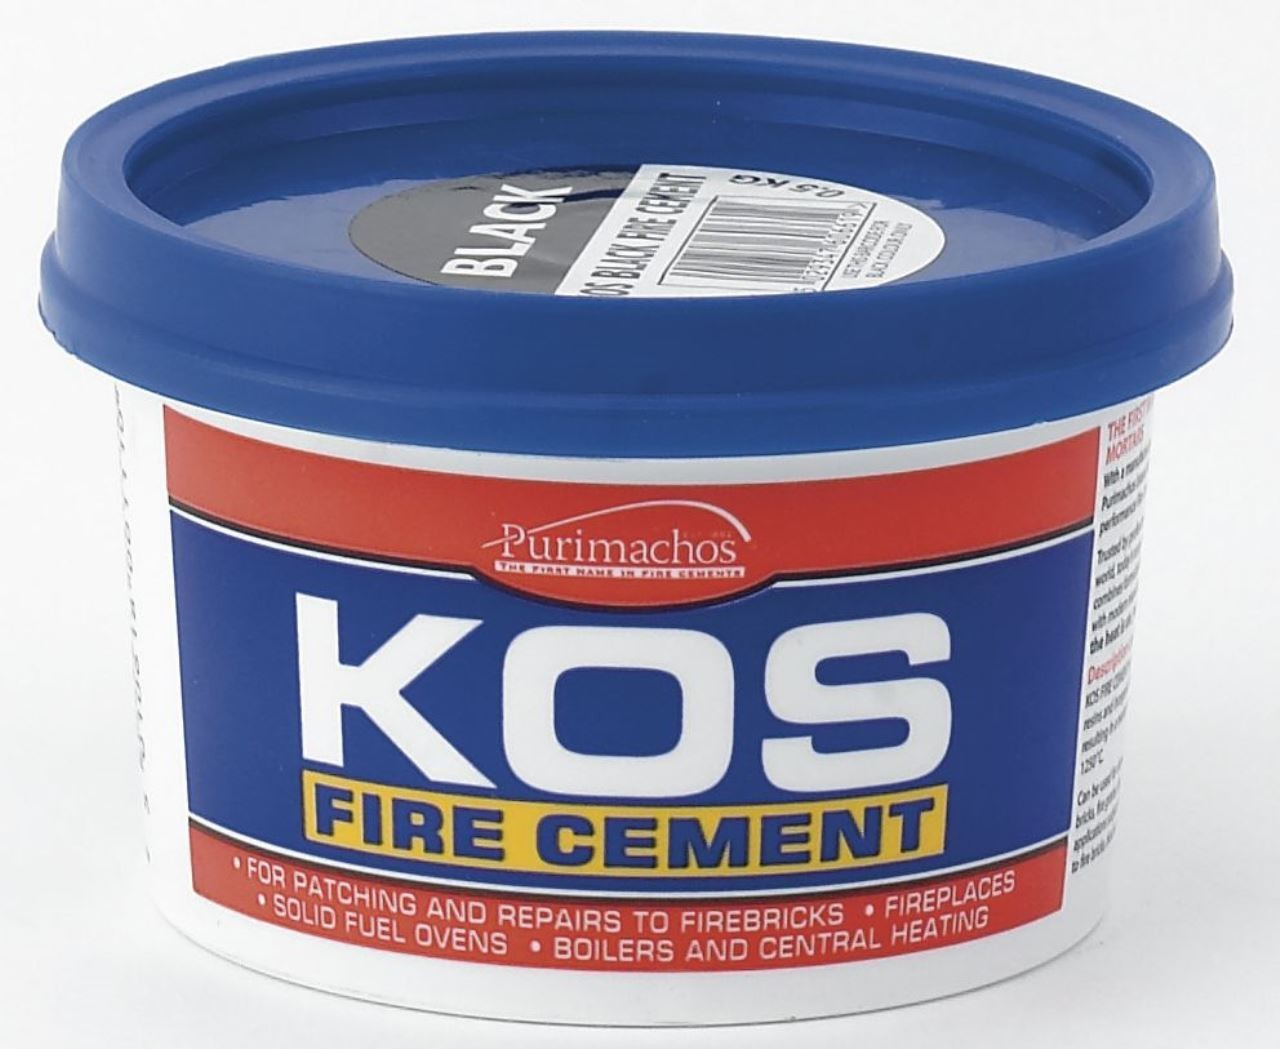 Small Fire Cement tub